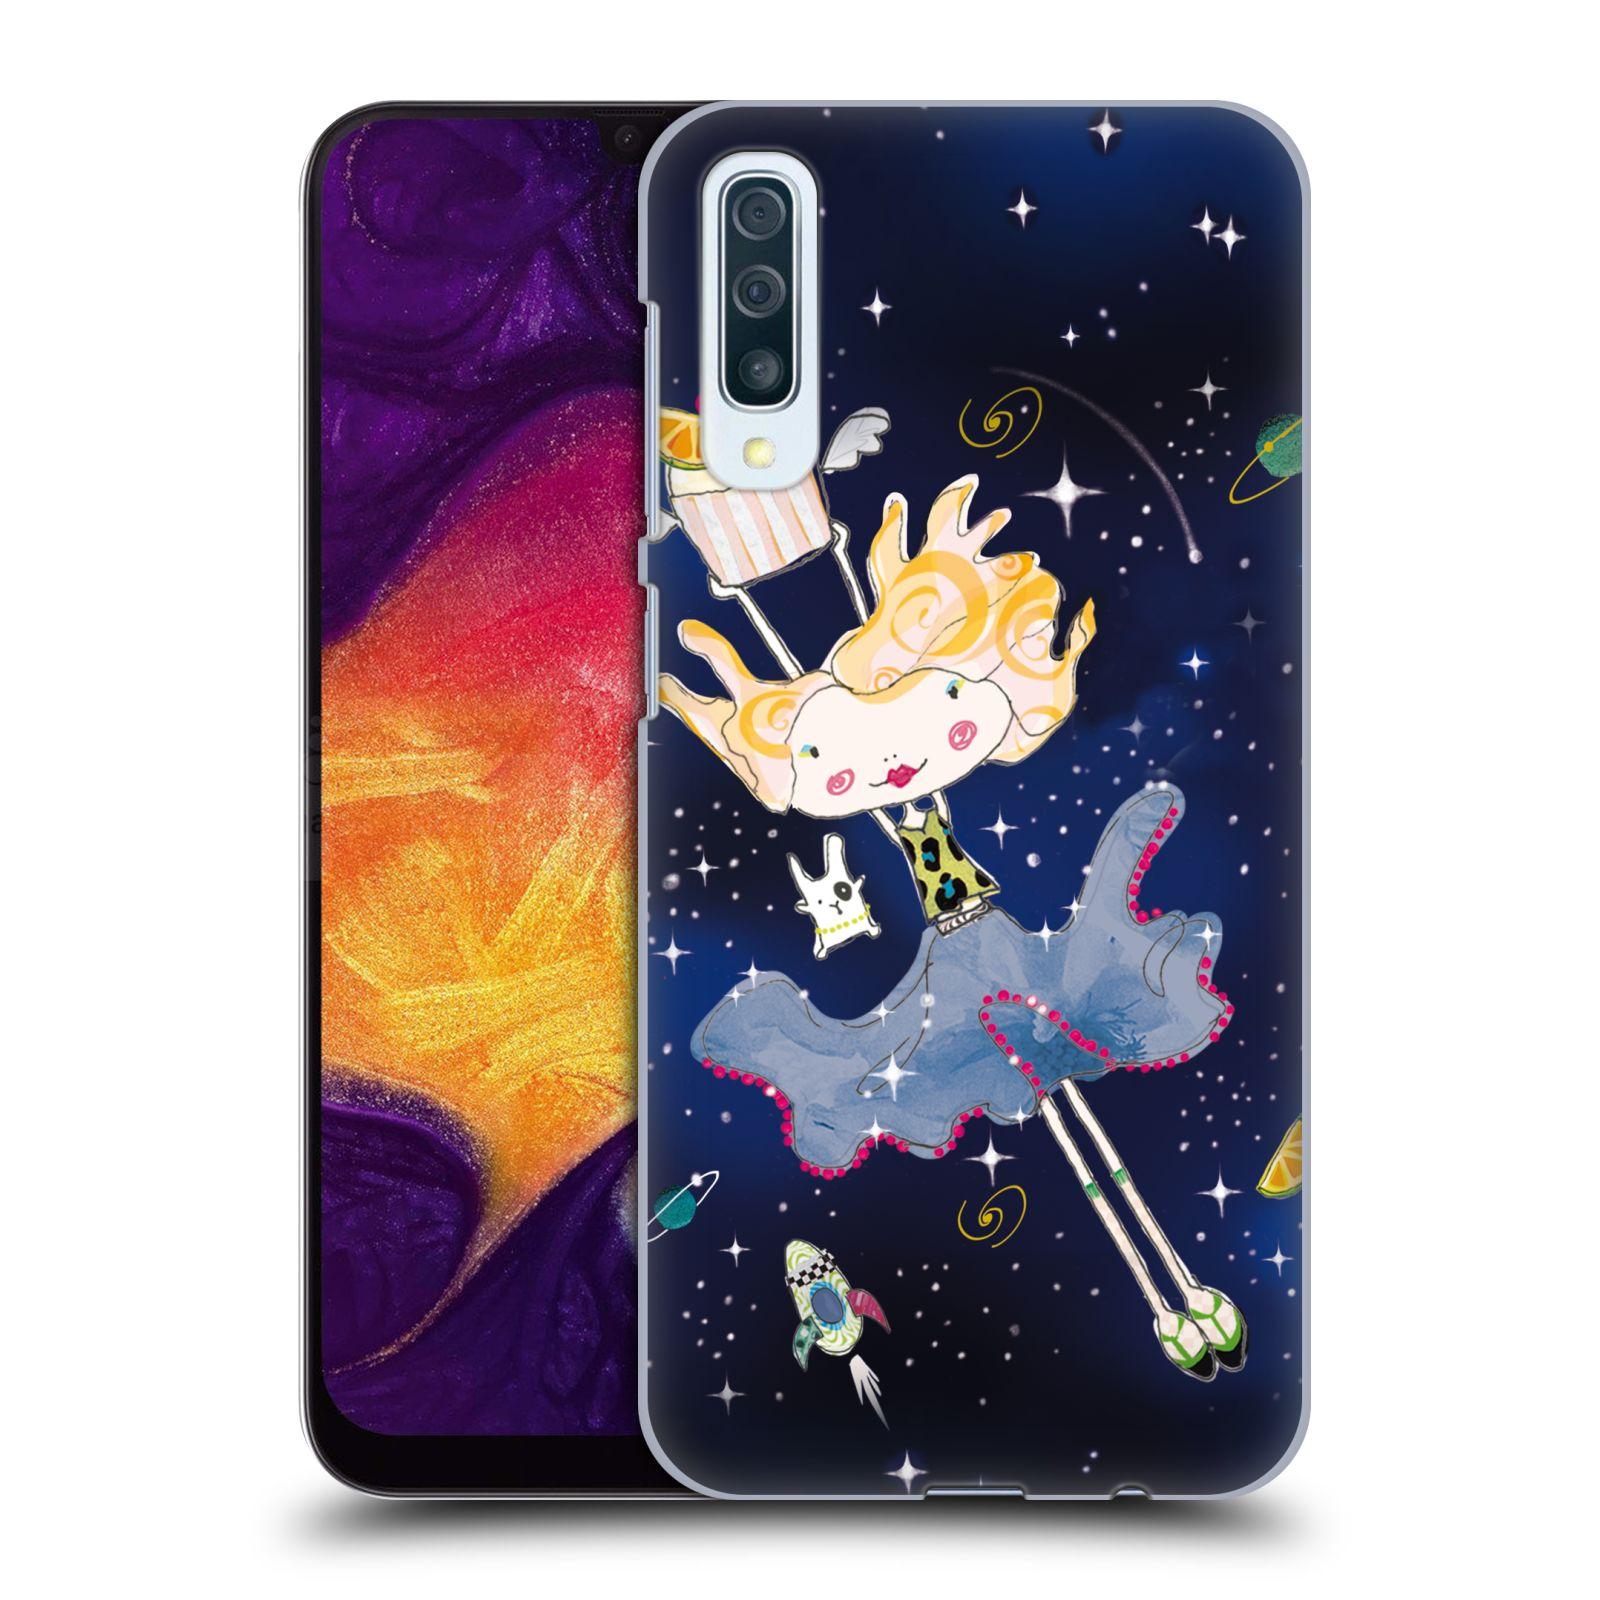 Official Turnowsky Tangerine Zebra Dream Dance Case for Samsung Galaxy A50/A30s (2019)